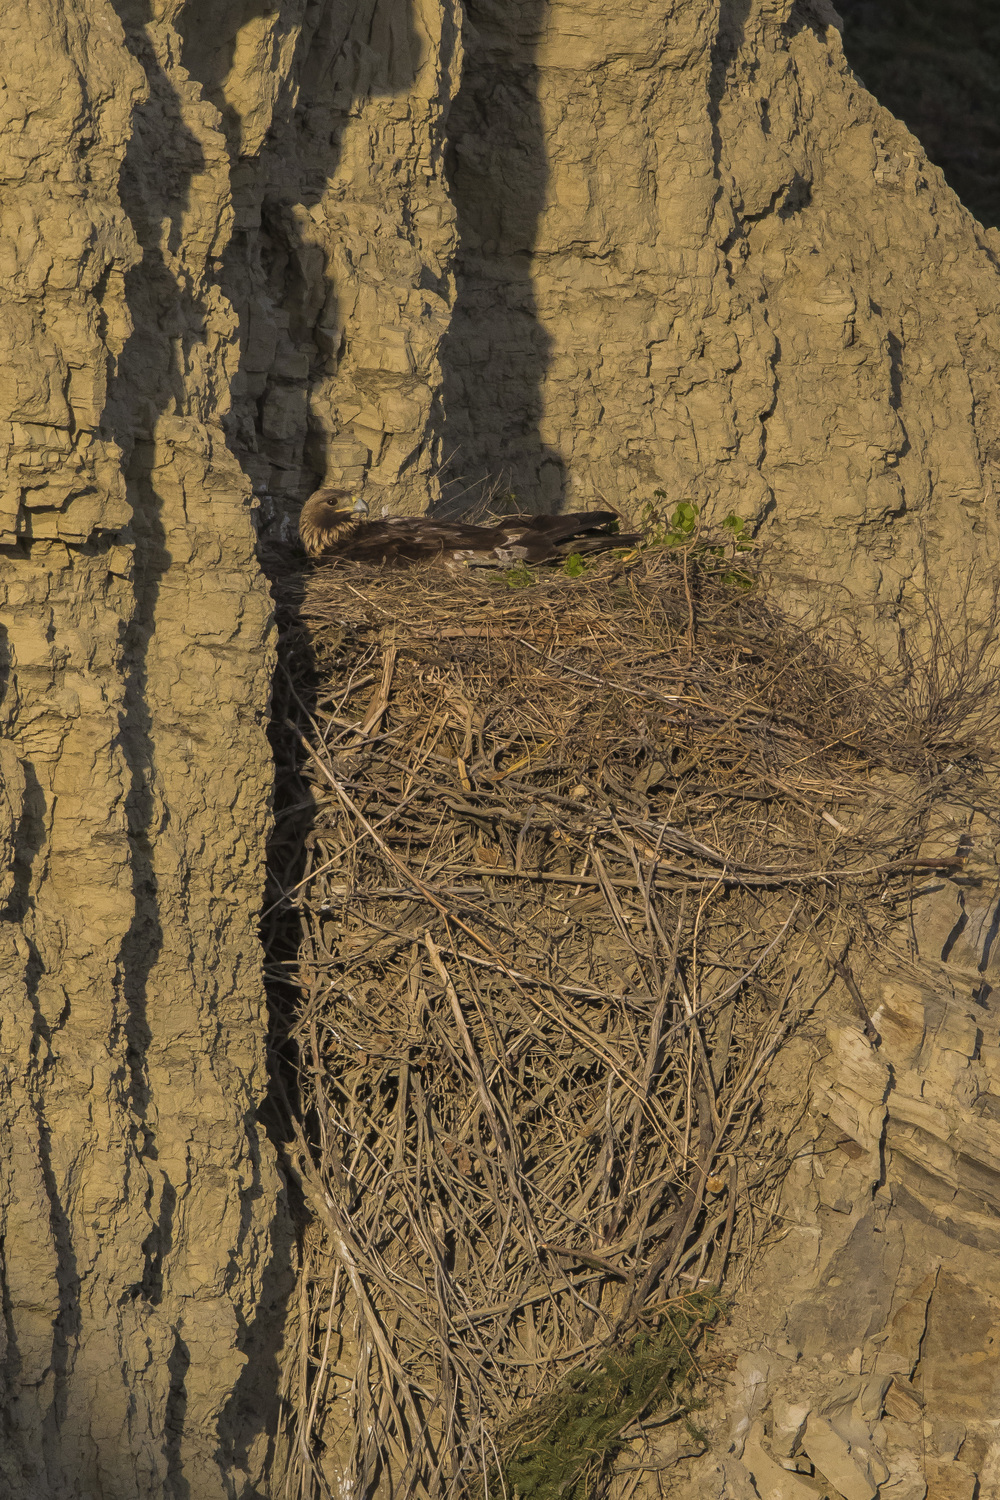 Female golden eagle incubating on the cliff nest. Female golden eagles will incubate for approximately 45 days while the male delivers prey. Early May 2015.